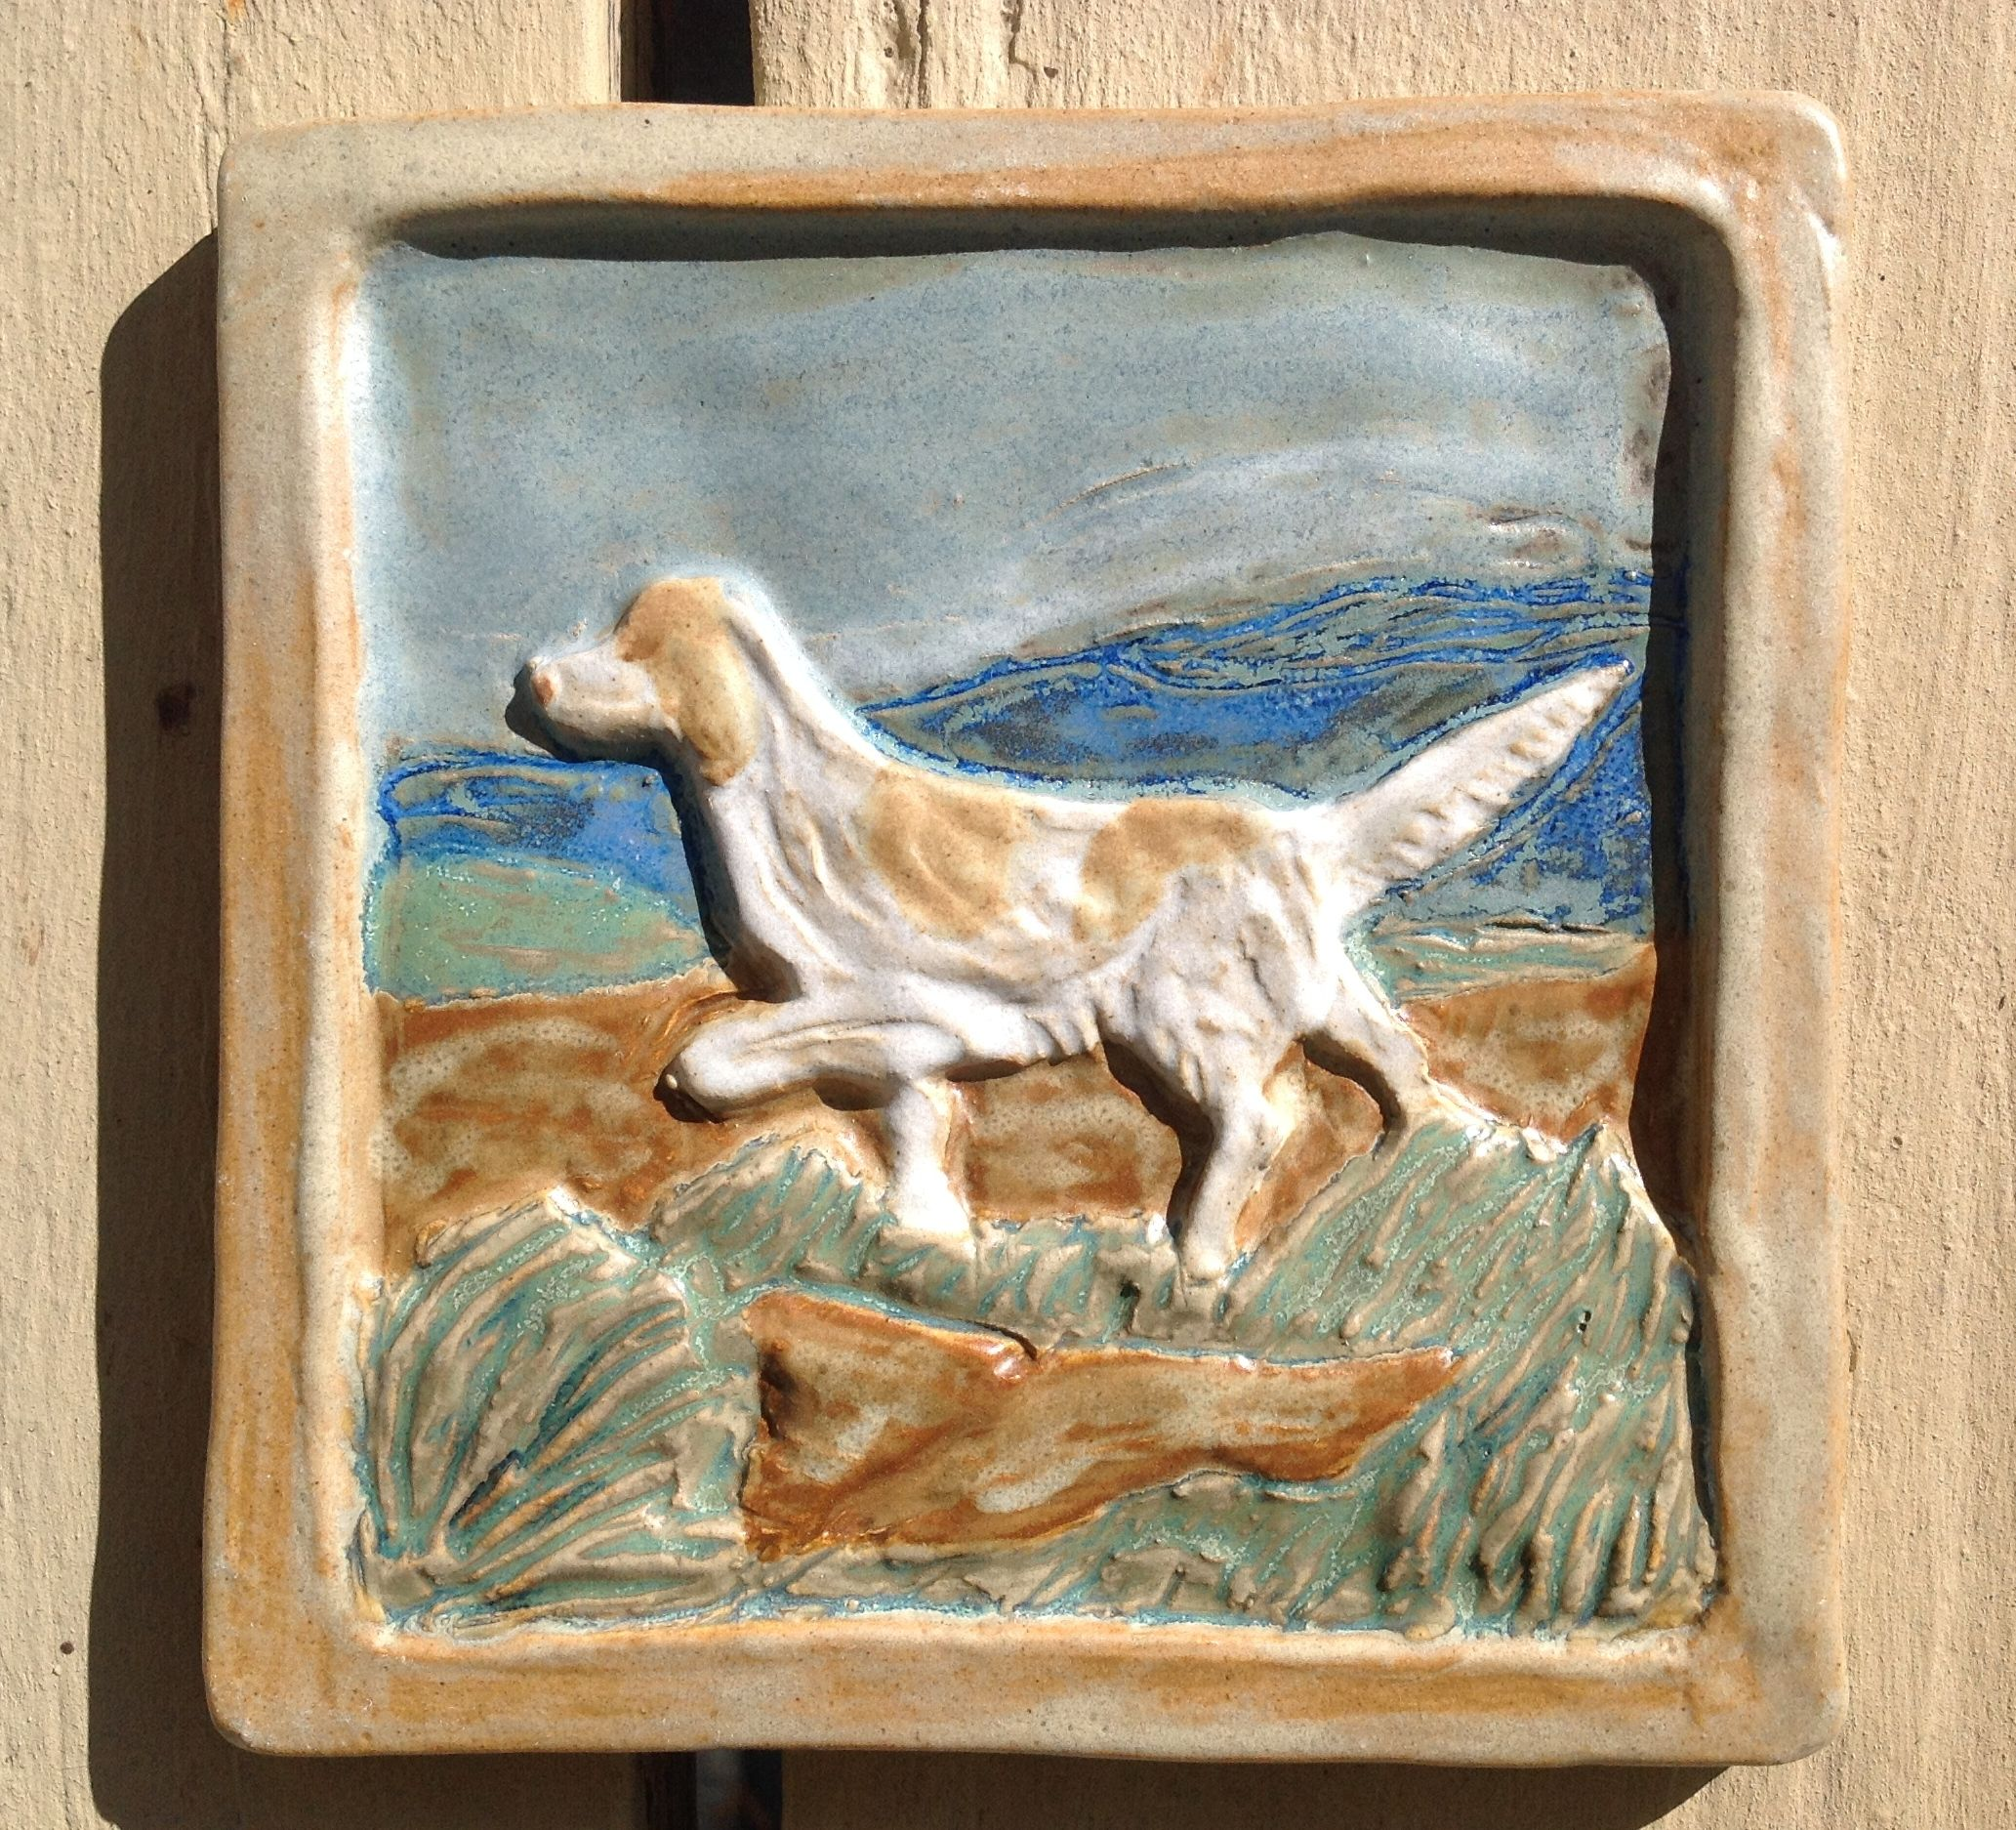 English setter handmade ceramic tile by drumboden tiles dog english setter handmade ceramic tile by drumboden tiles dailygadgetfo Gallery